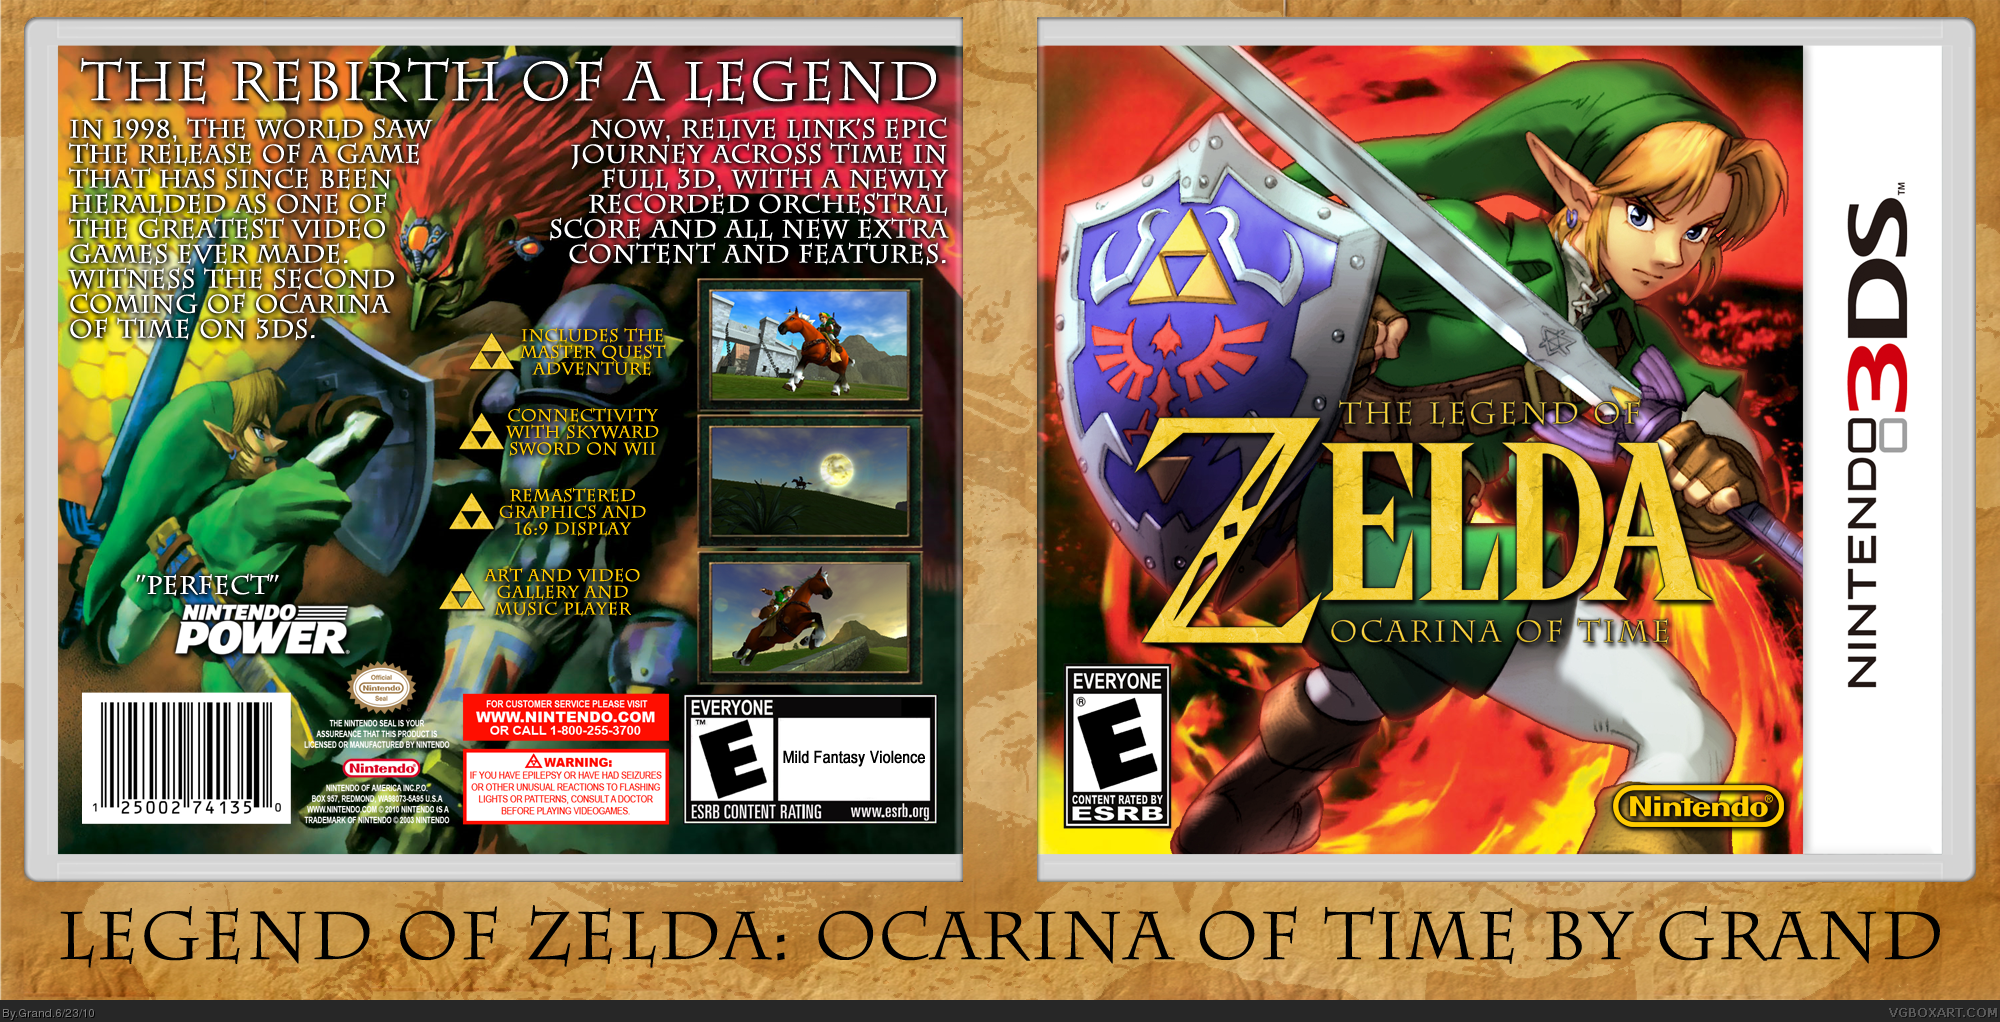 The Legend of Zelda: Ocarina of Time 3D box cover